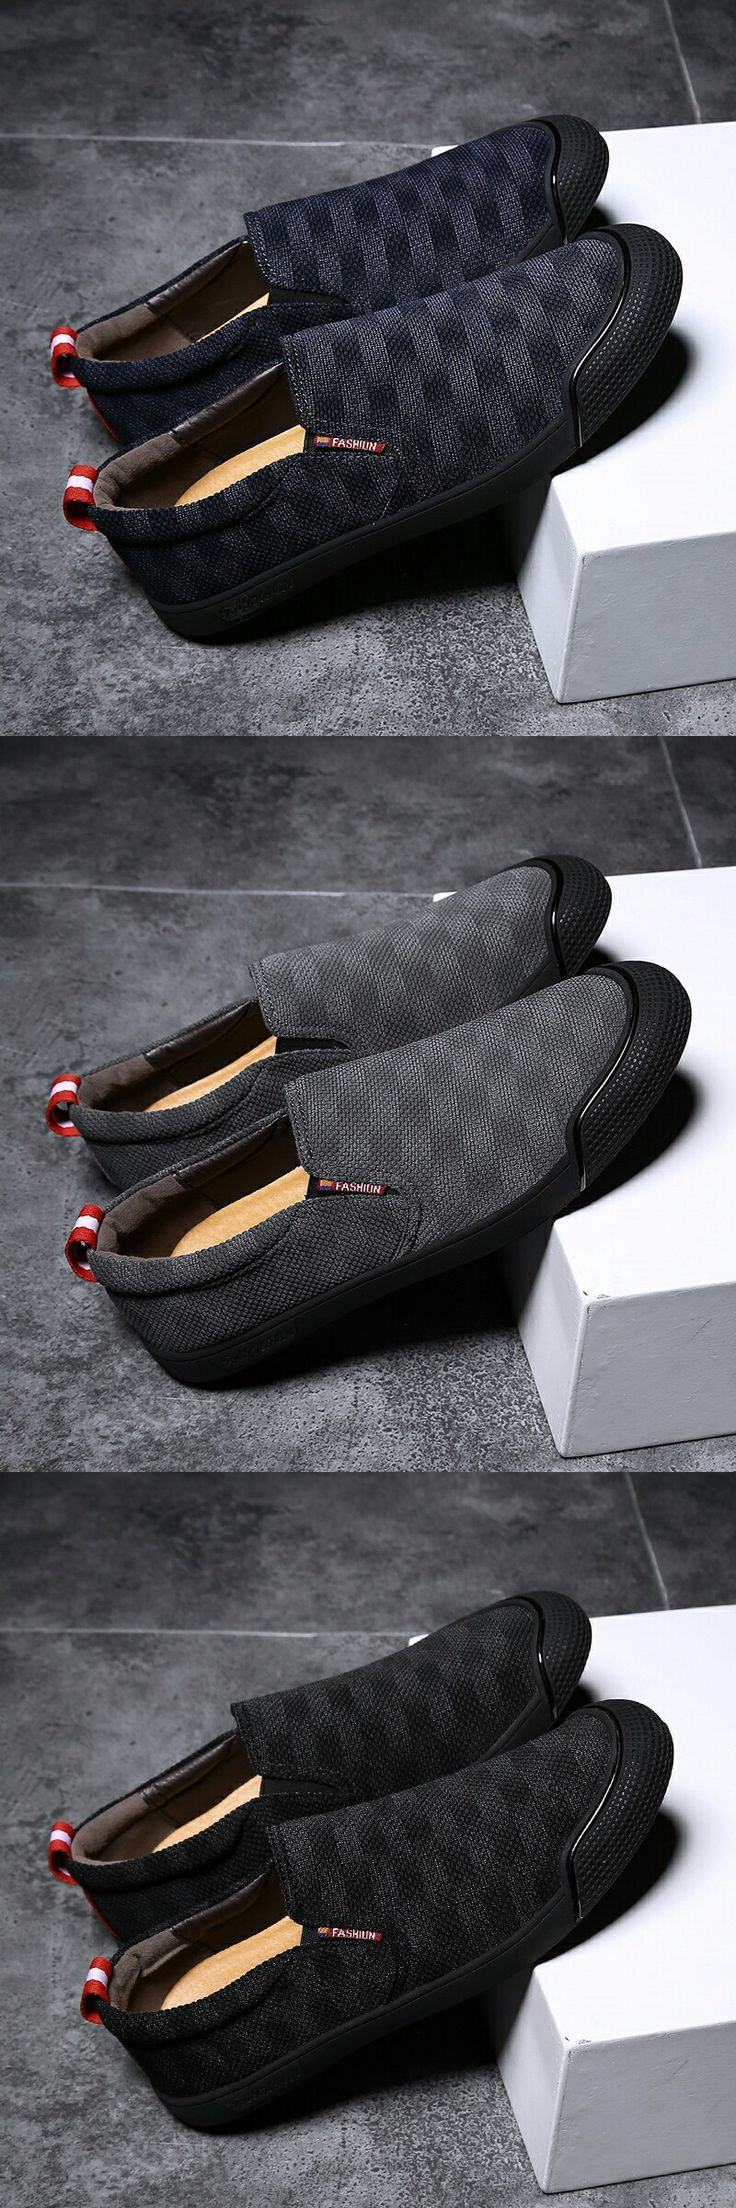 Prelesty Men Casual Mocasín Gentleman Fashion Party Plaid Pattern Cool Slip On   – Awesome Shoes